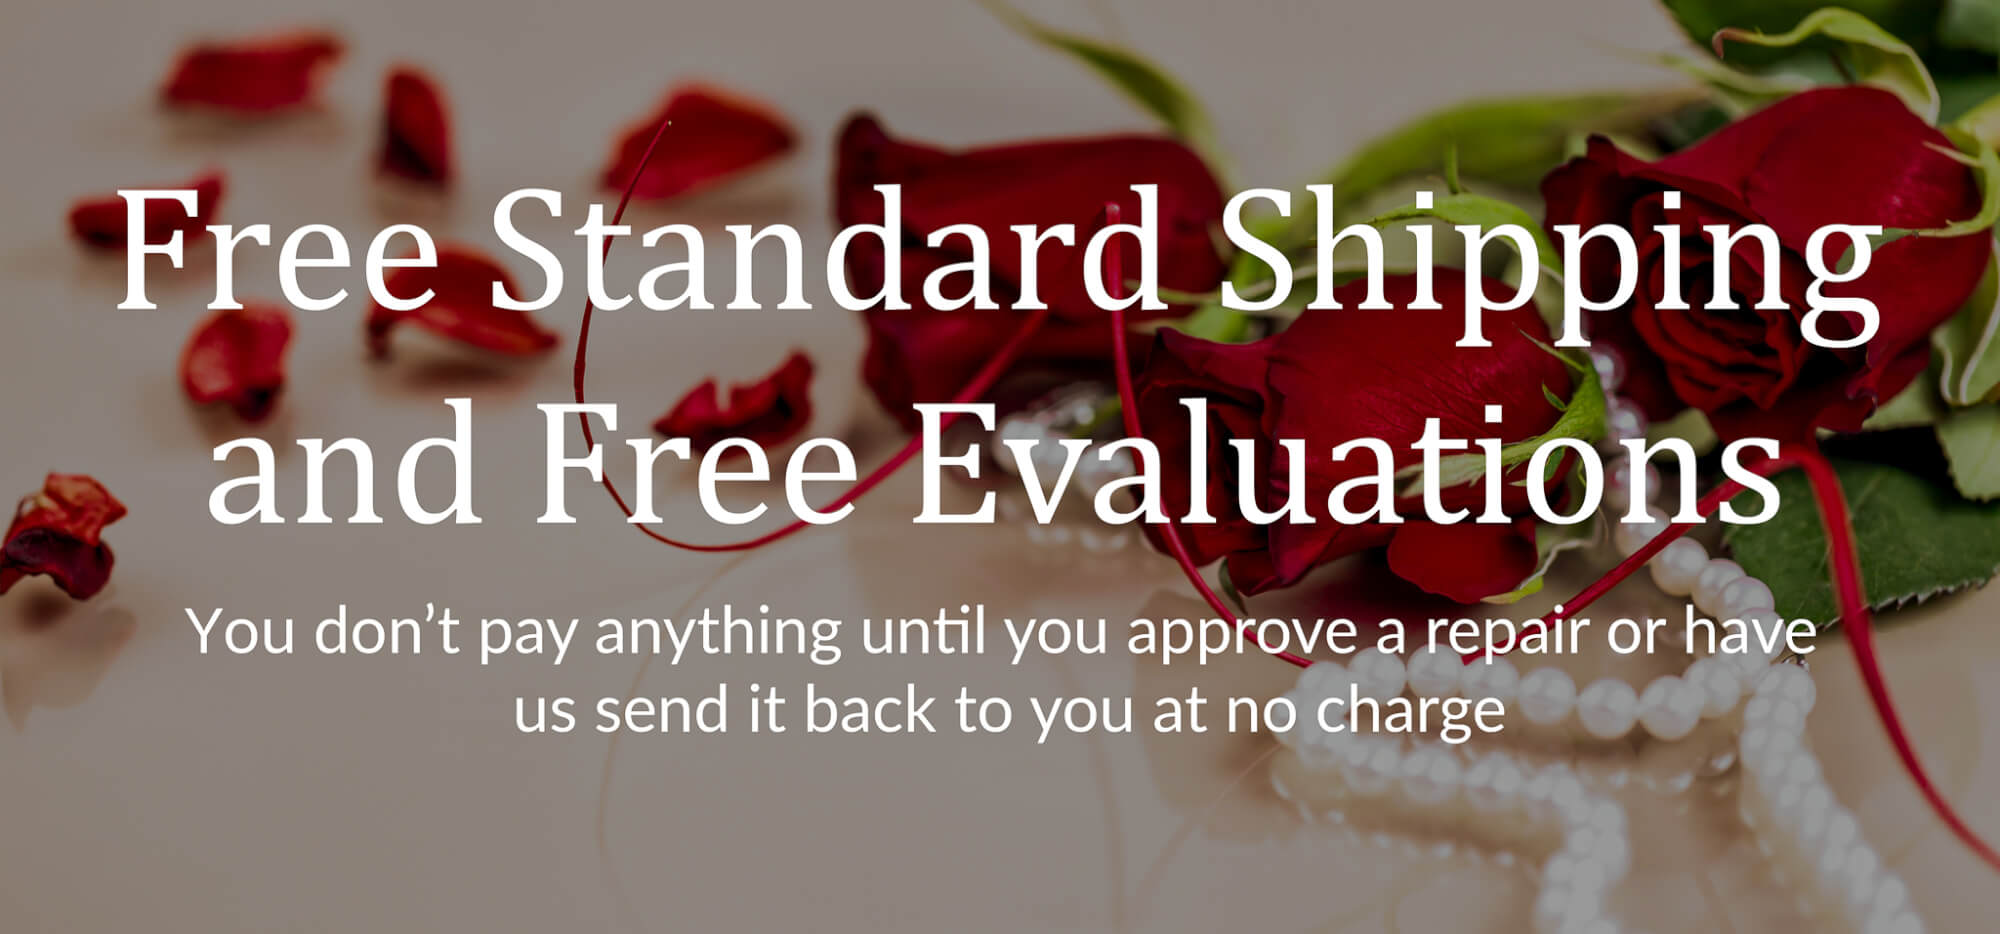 Banner Showing Free Evaluations & Shipping